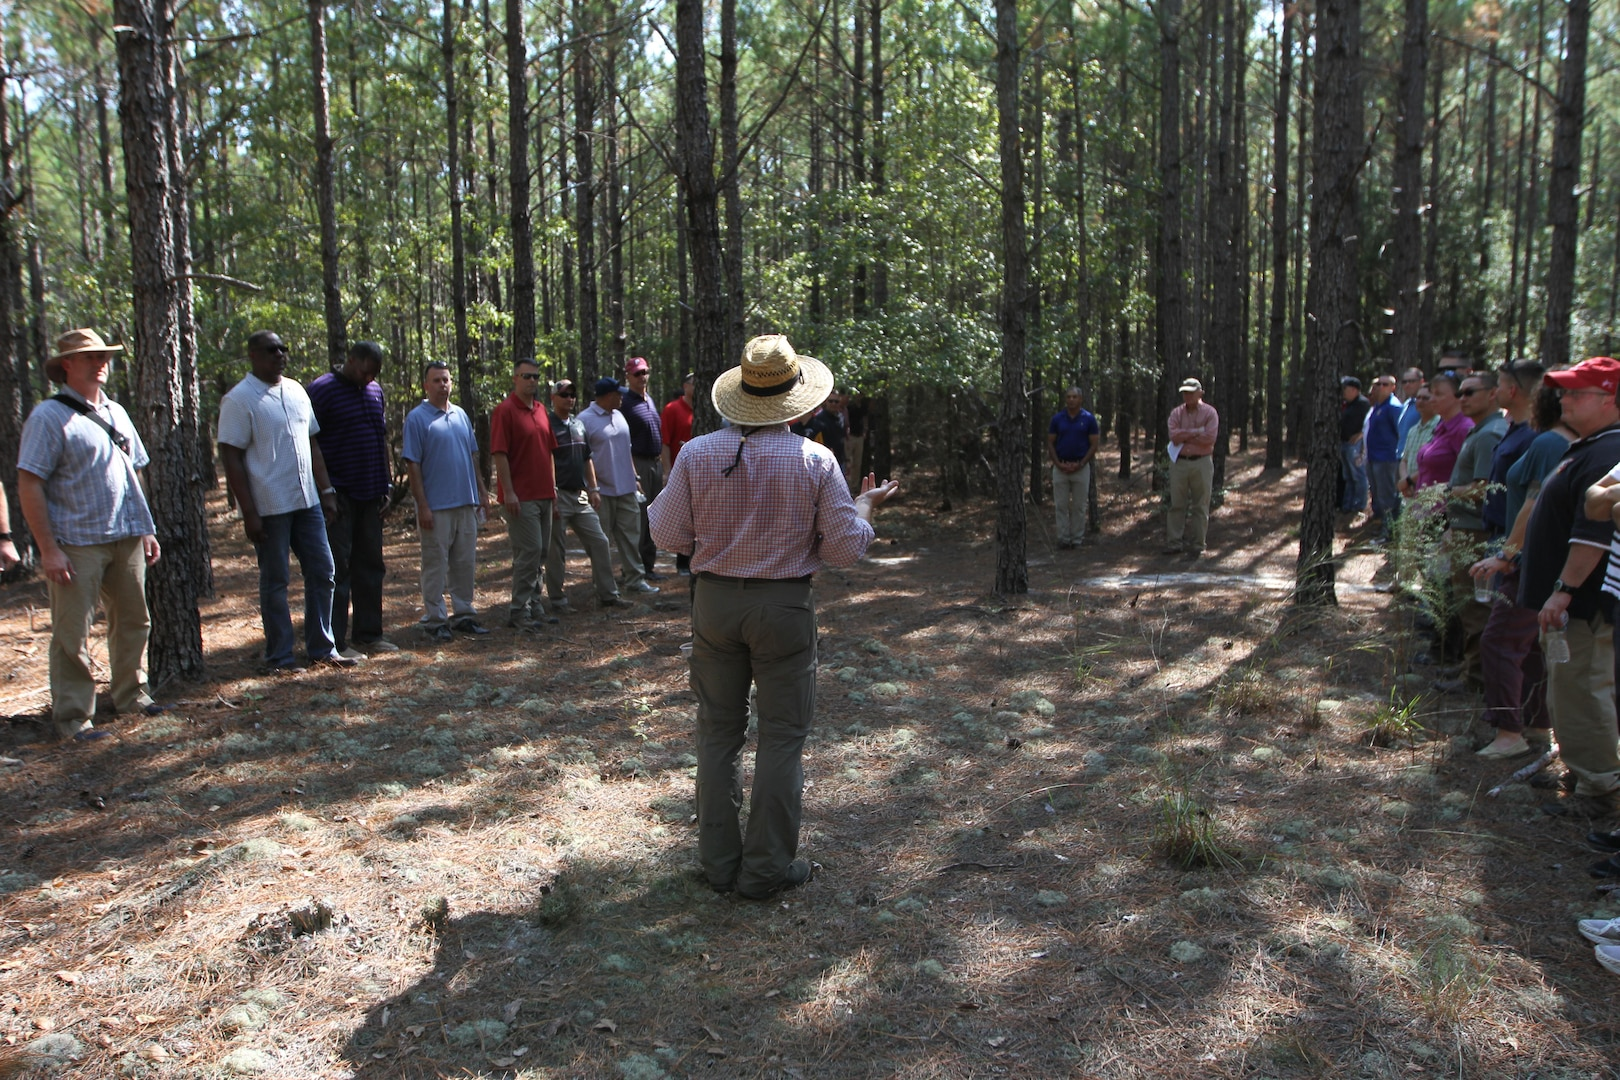 Two groups of people stand facing eachother in the woods while a guide speaks.